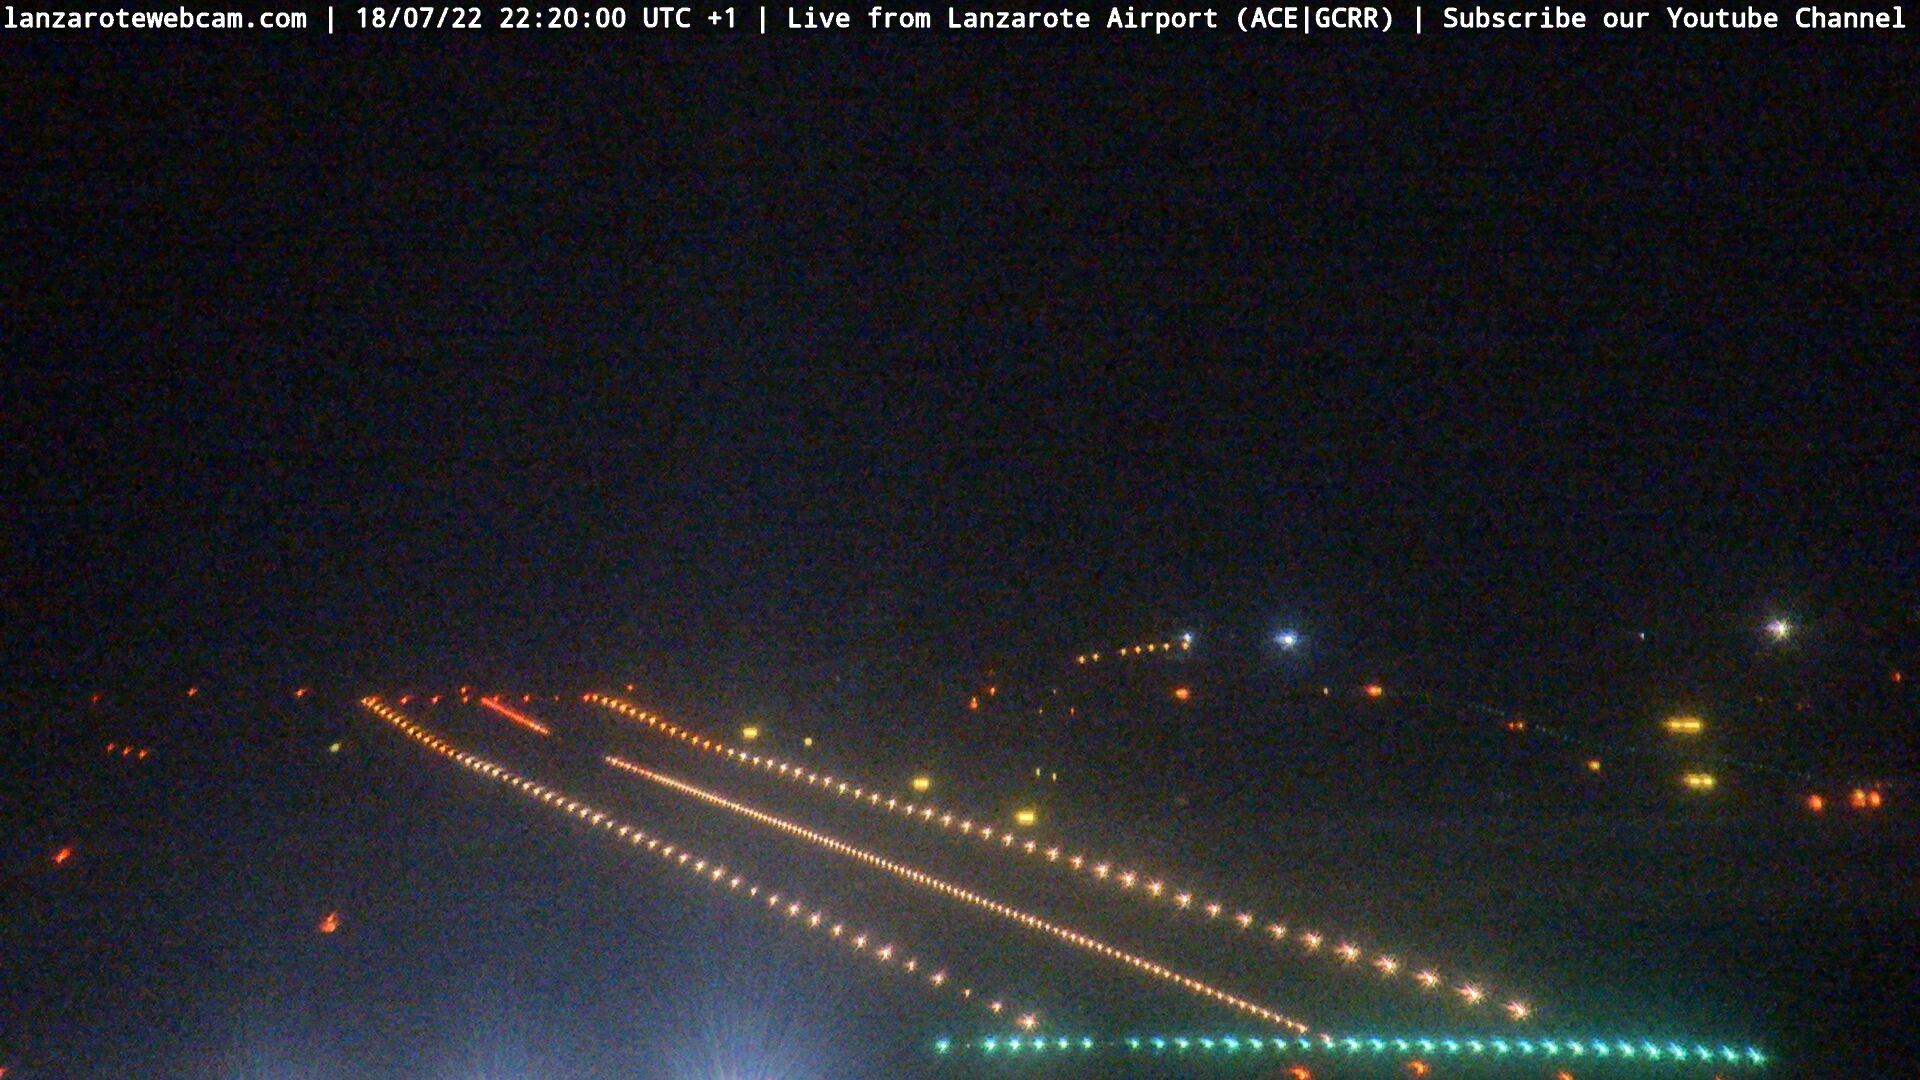 Snapshot from Lanzarote Airport webcam, https://lanzarotewebcam.com